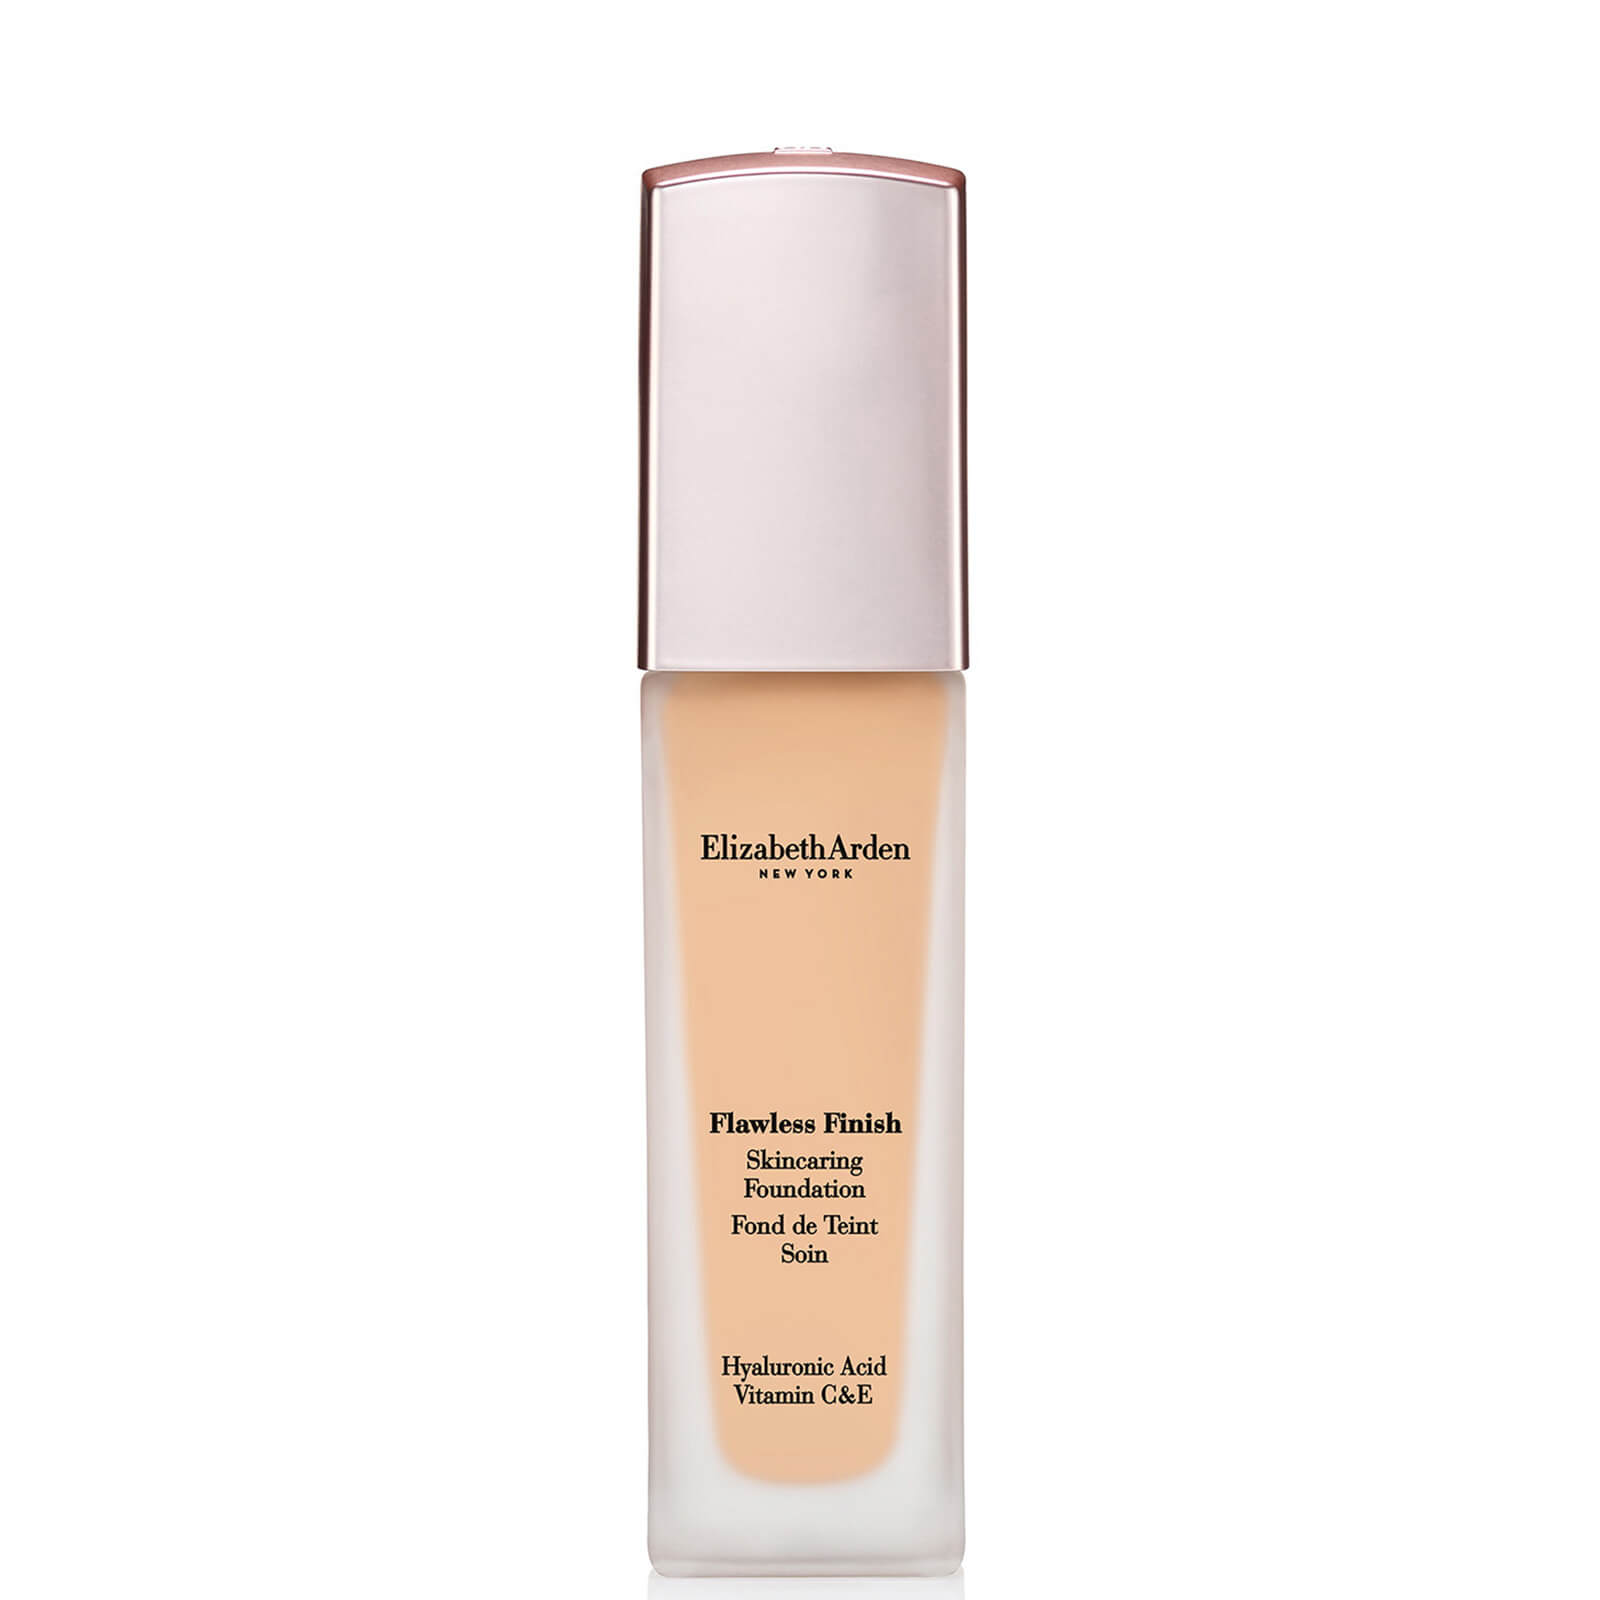 Elizabeth Arden Flawless Finish Skincaring Foundation 30ml (Various Shades) - 160W